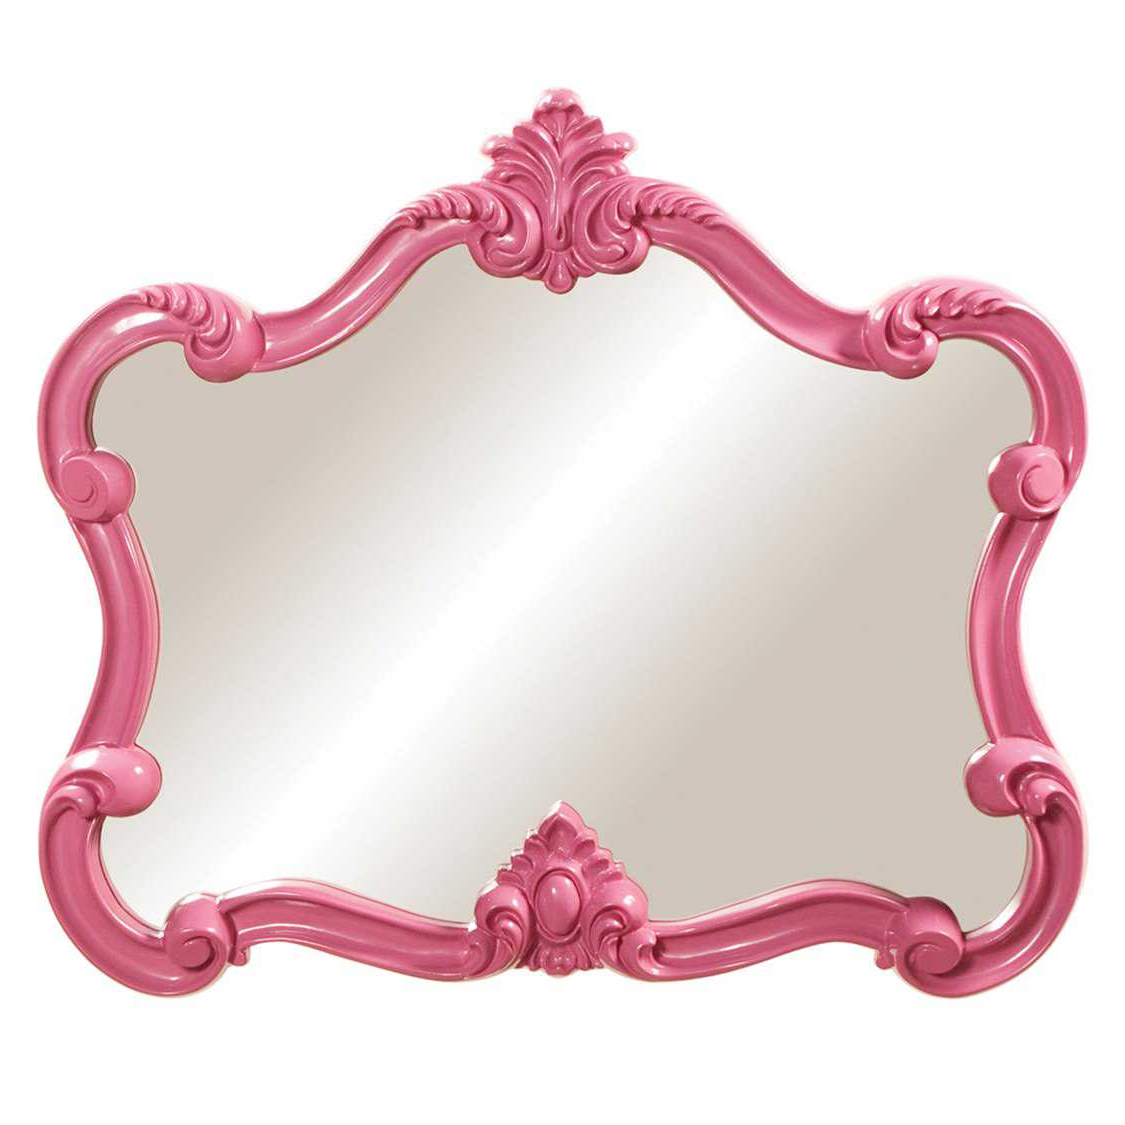 Pink Wall Mirrors In Most Up To Date Howard Elliott Veruca 32 X 28 Pink Wall Mirror (View 12 of 20)